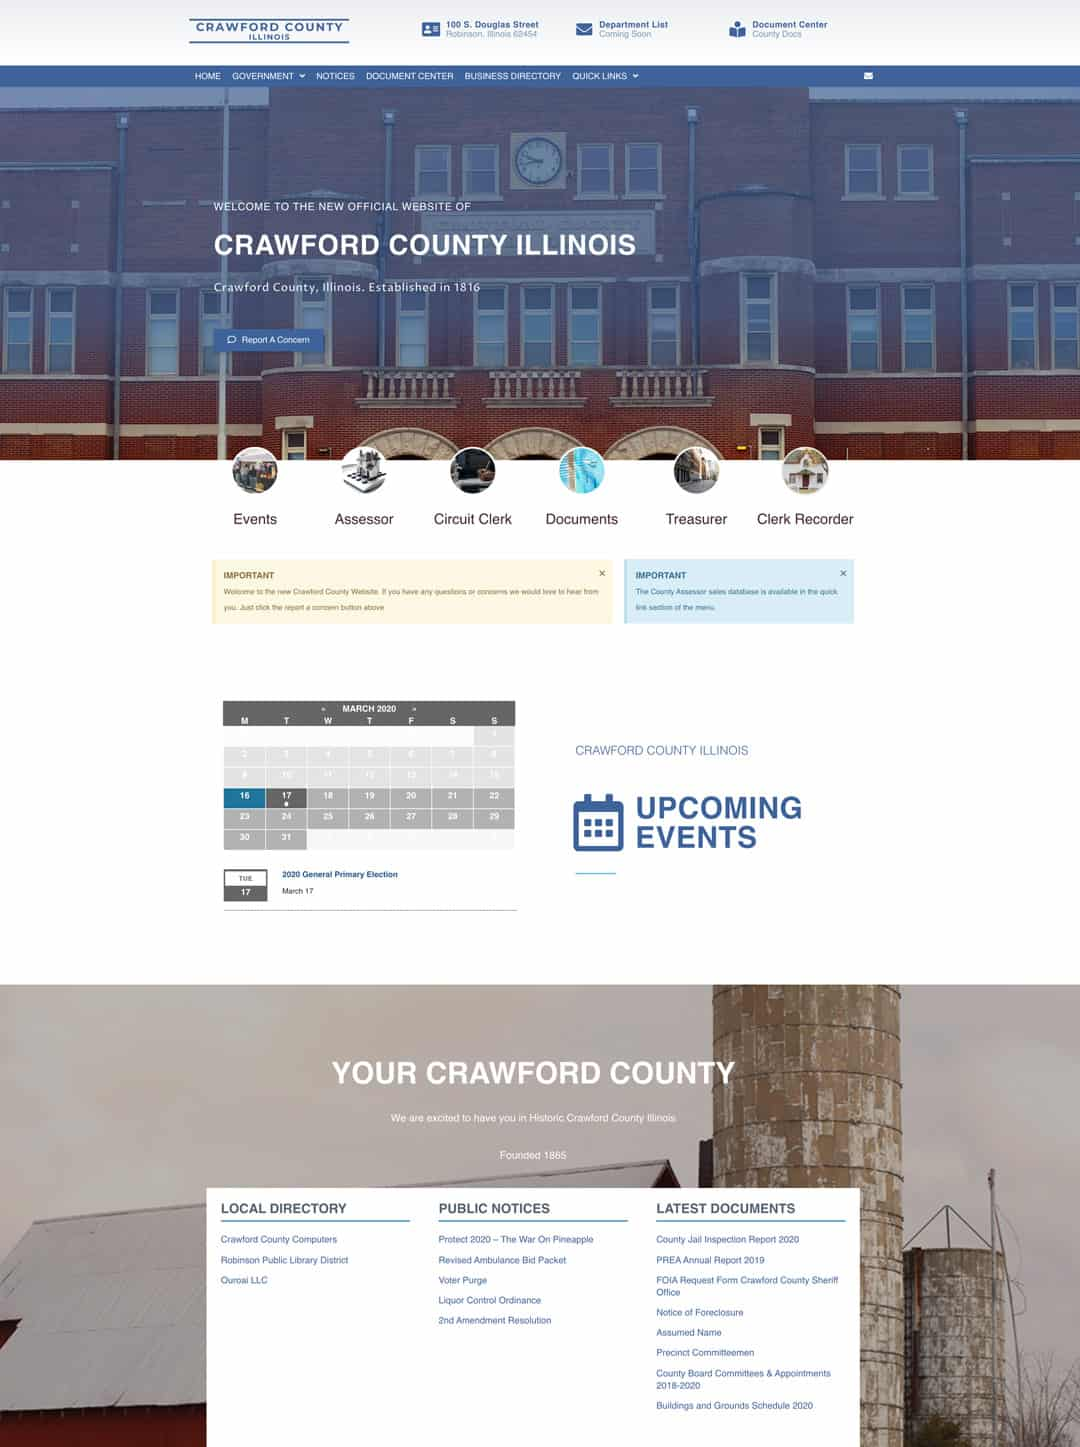 Screen Grab of the crawford county website